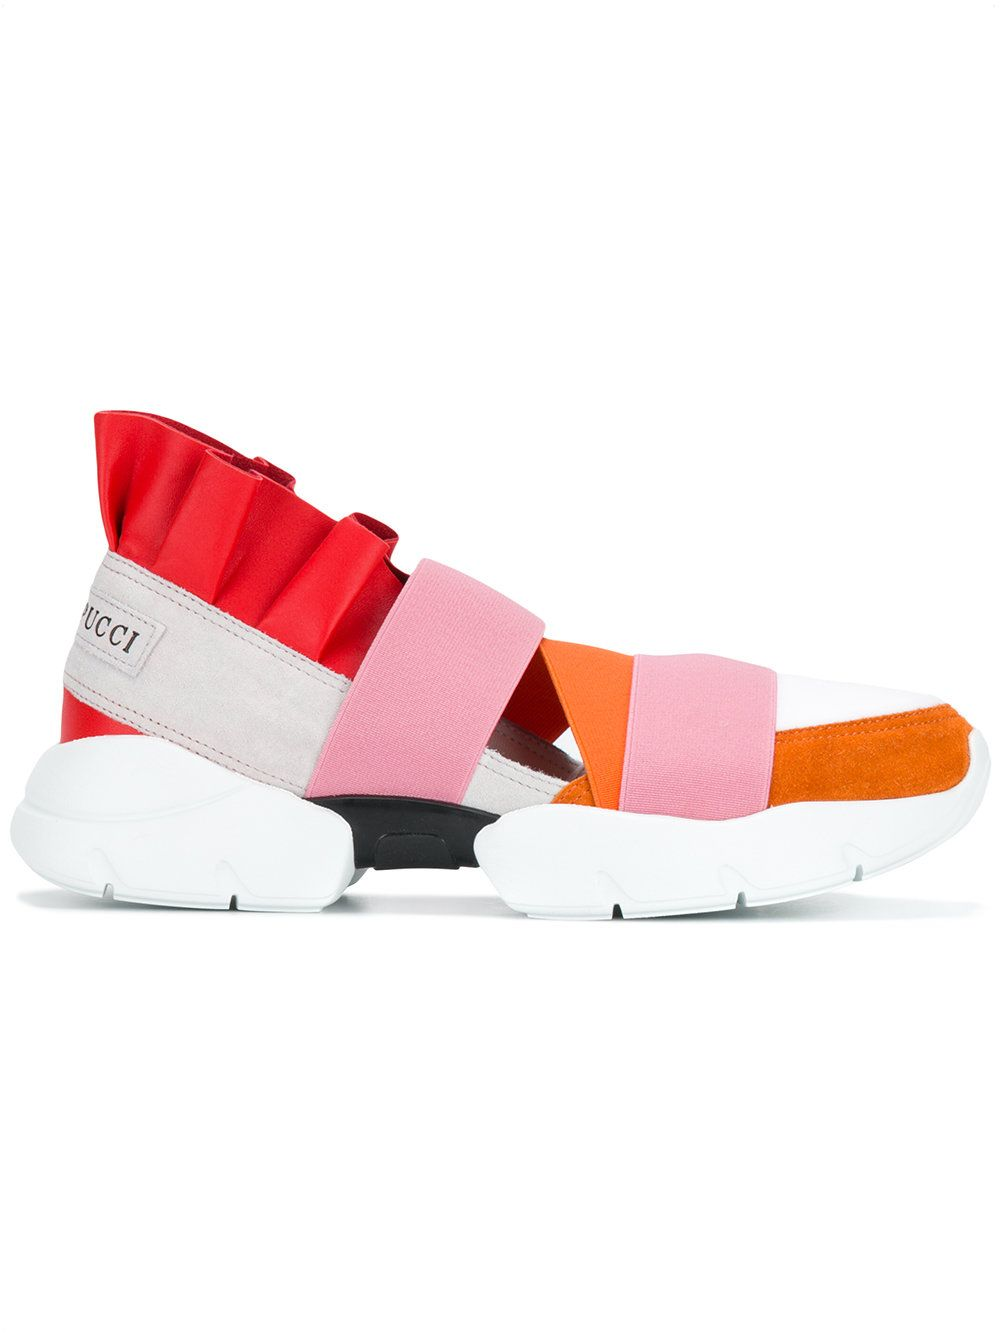 077502cc2ddd 30Mm Ruffled Suede   Leather Sneakers, Orange Pink Red   Emilio ...